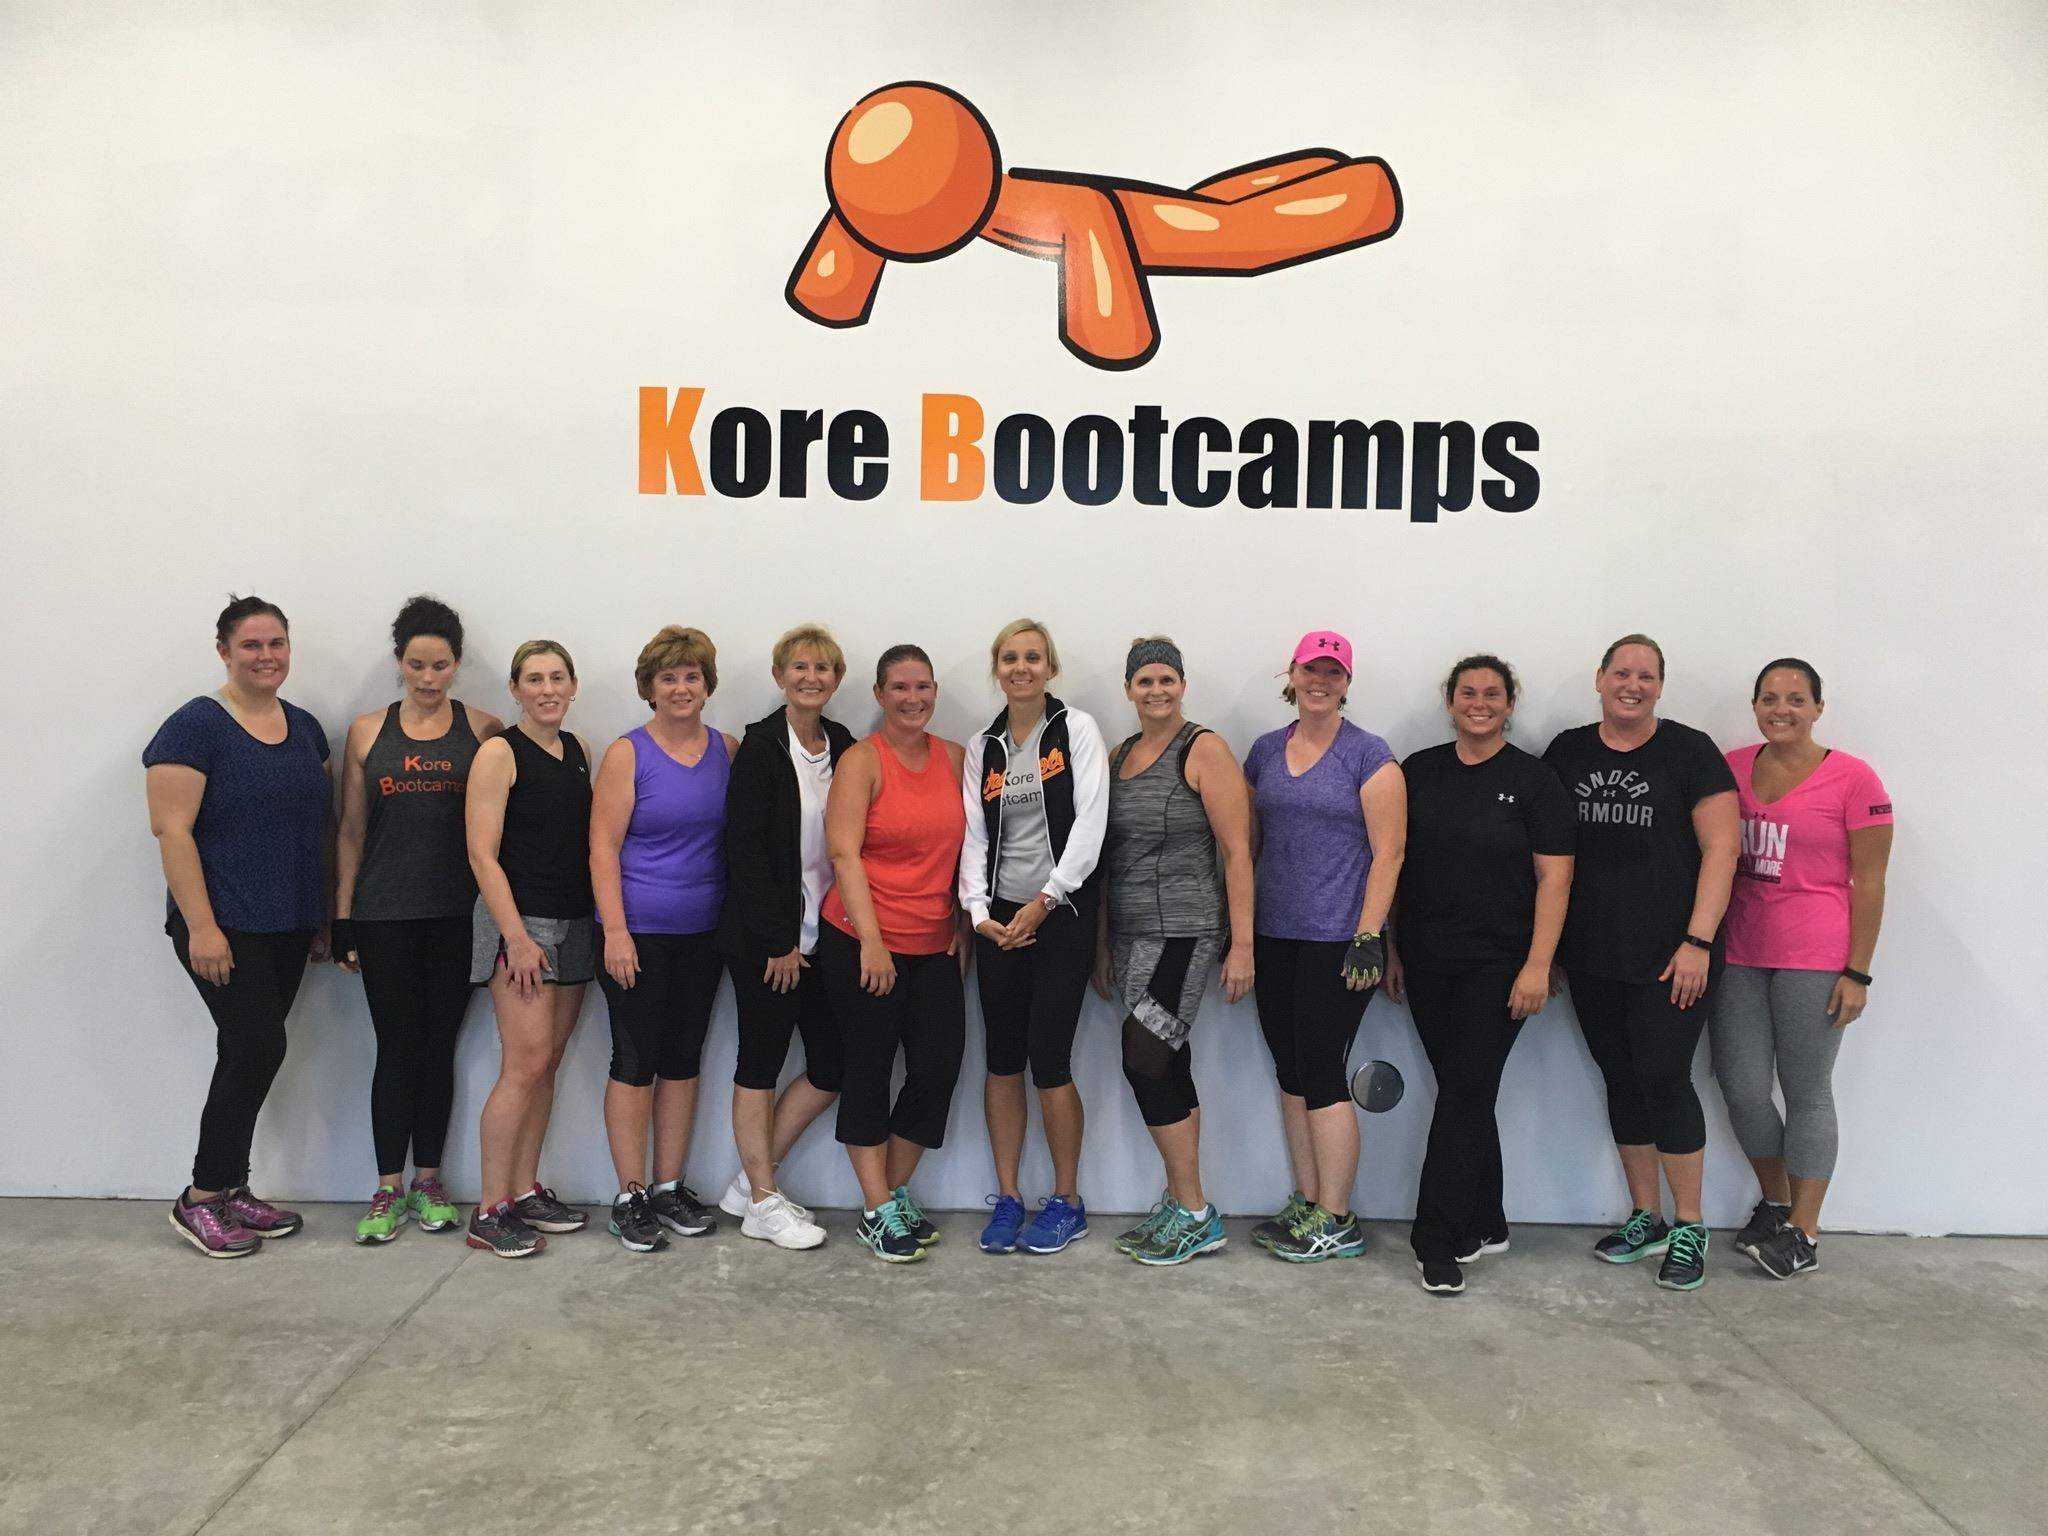 Kore Bootcamps